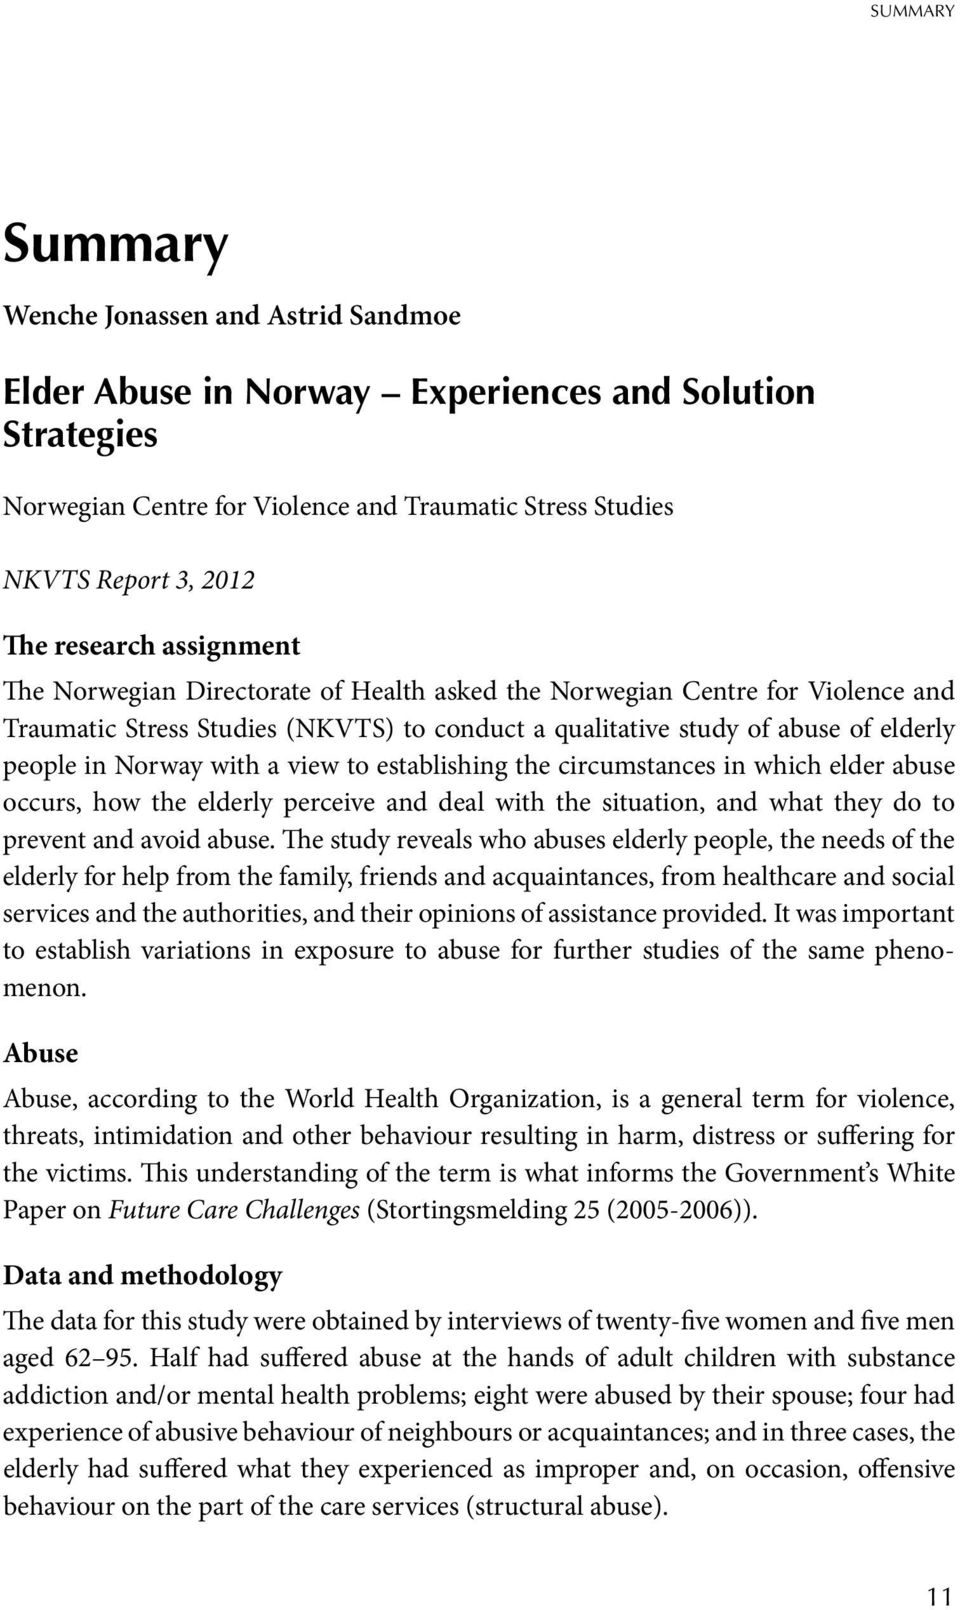 Norway with a view to establishing the circumstances in which elder abuse occurs, how the elderly perceive and deal with the situation, and what they do to prevent and avoid abuse.